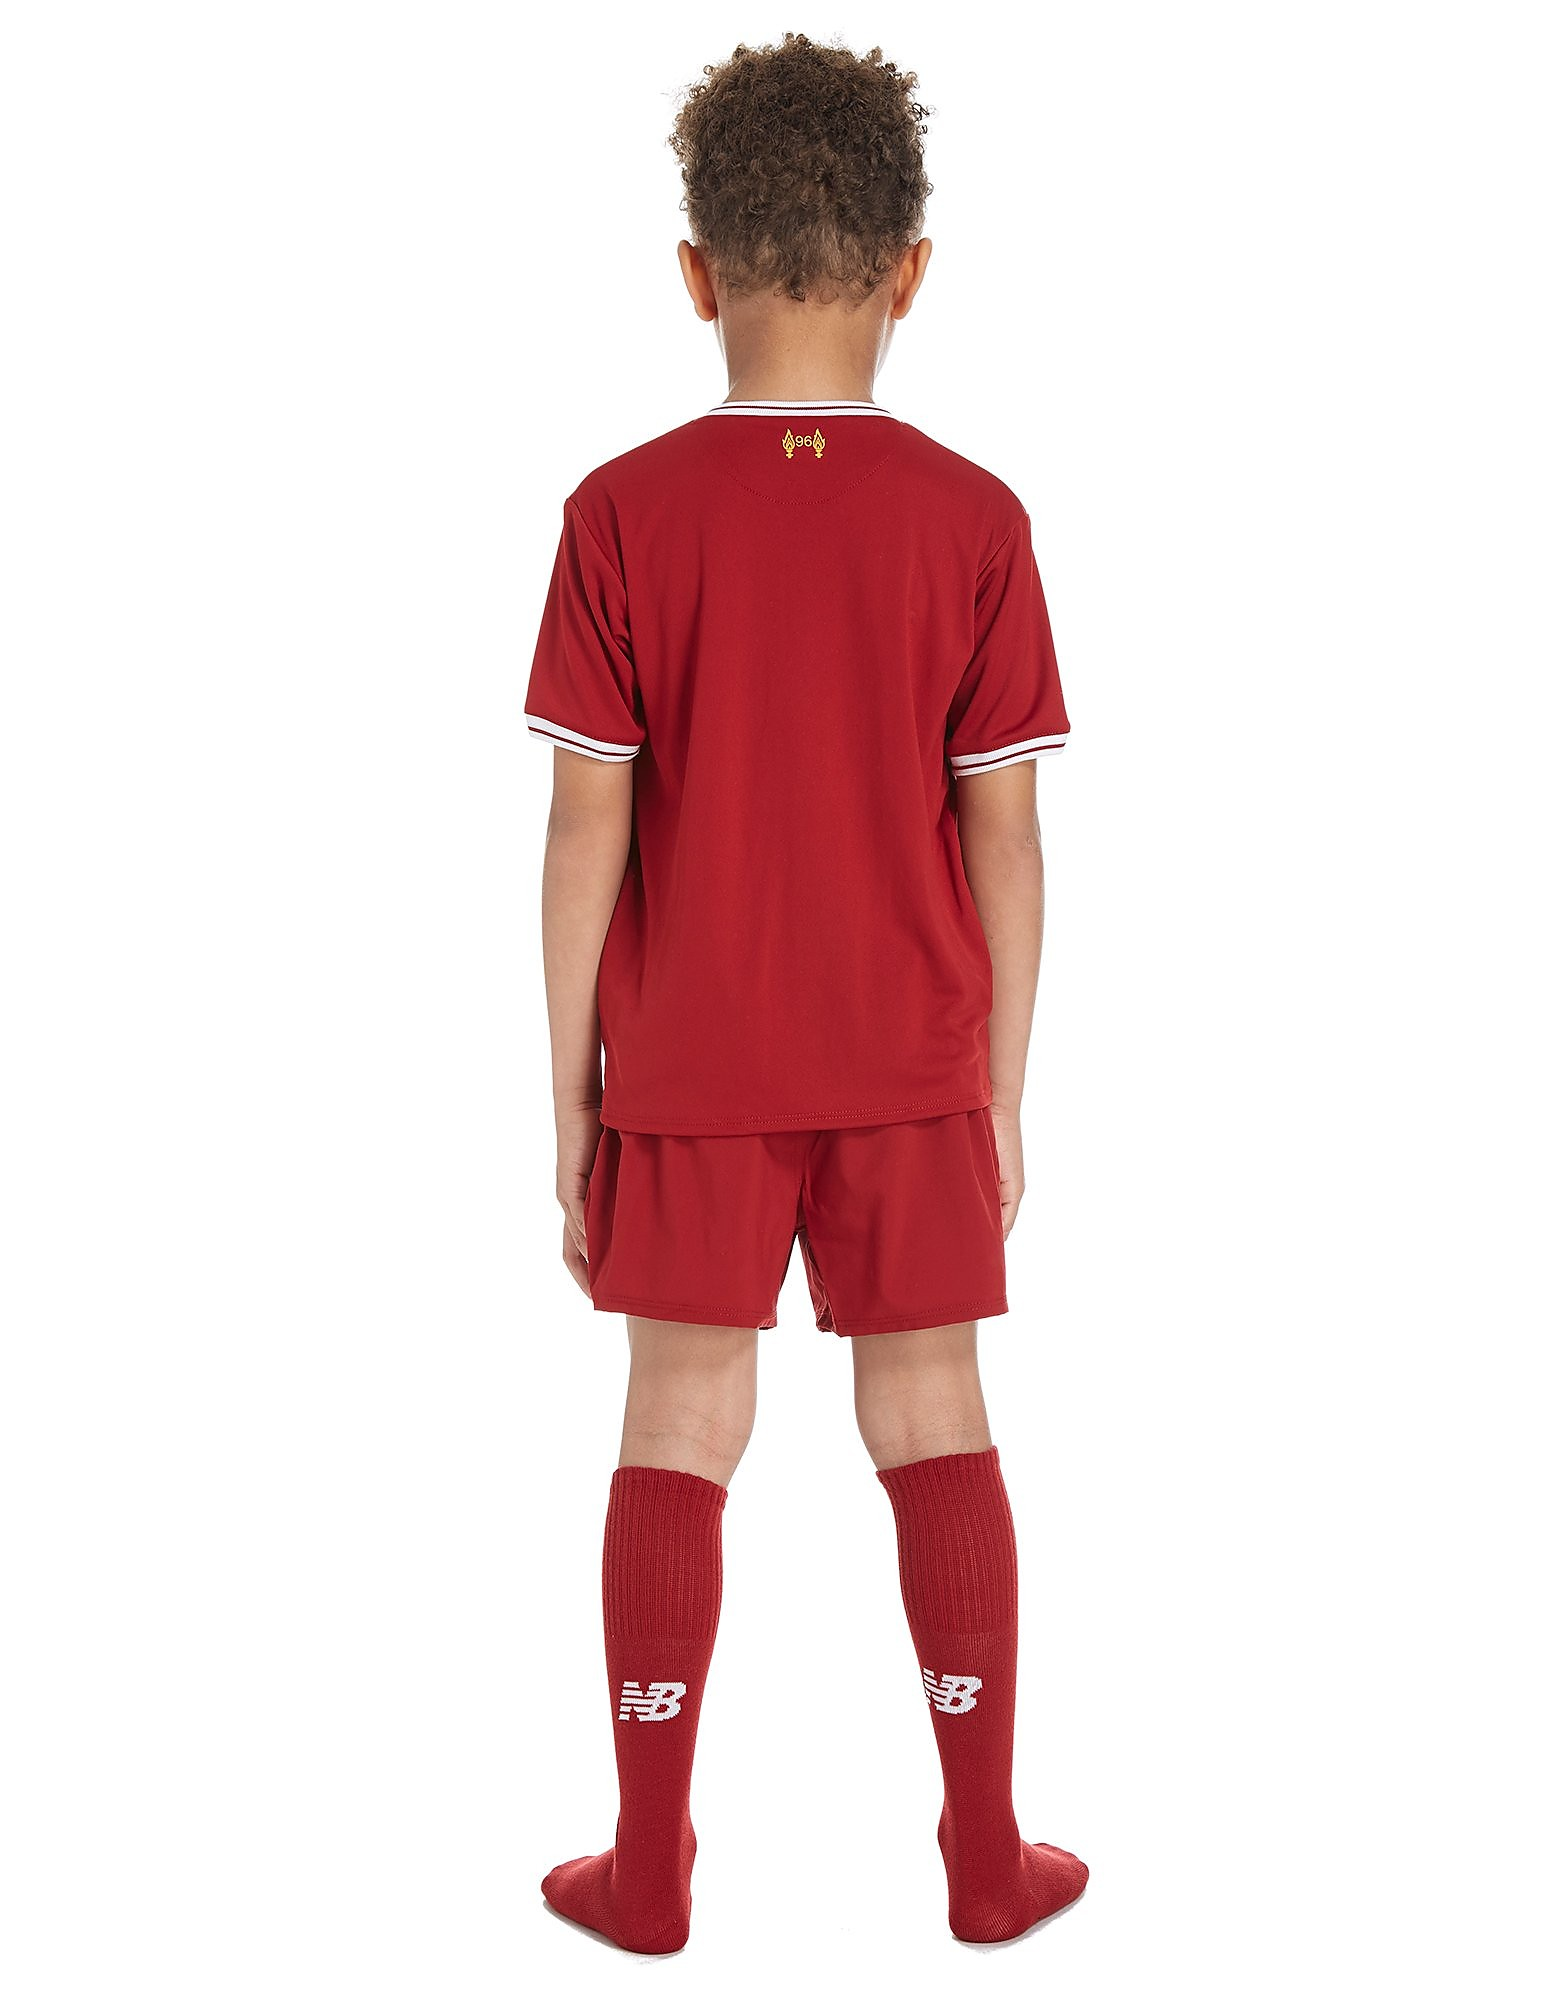 New Balance Liverpool FC 2017/18 Home Kit Bambino